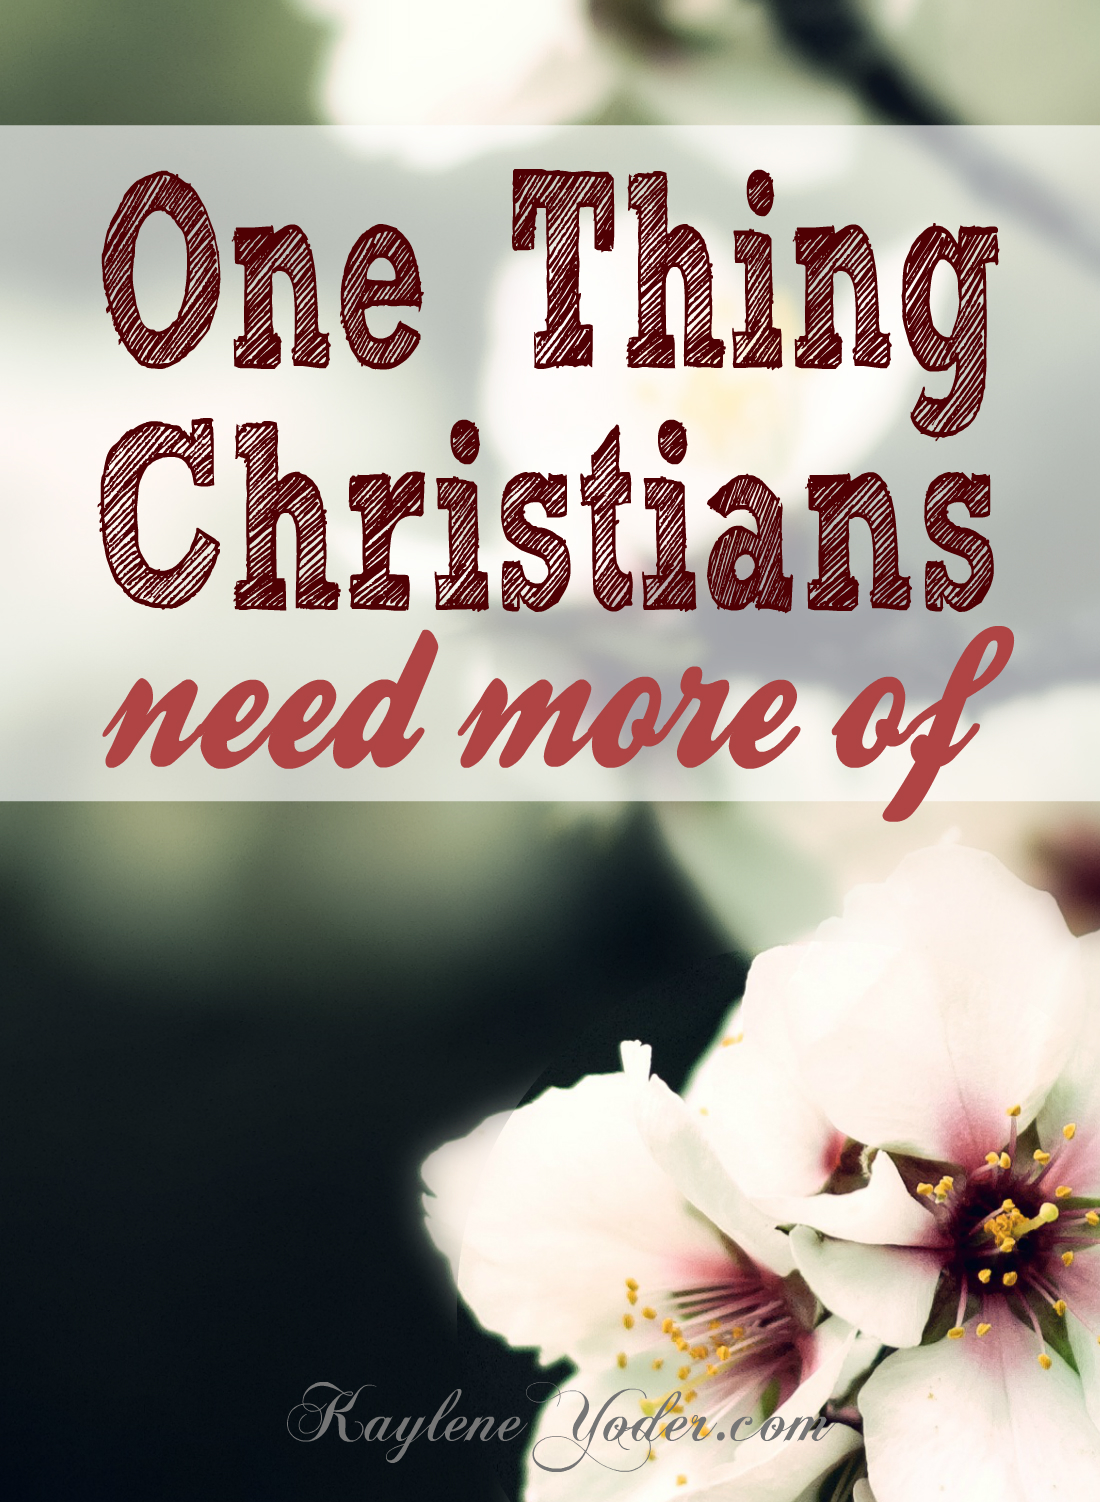 One thing Christians need more of is to grow in godliness. Here are three ways you can be intentional about how you grow to become more like Jesus.